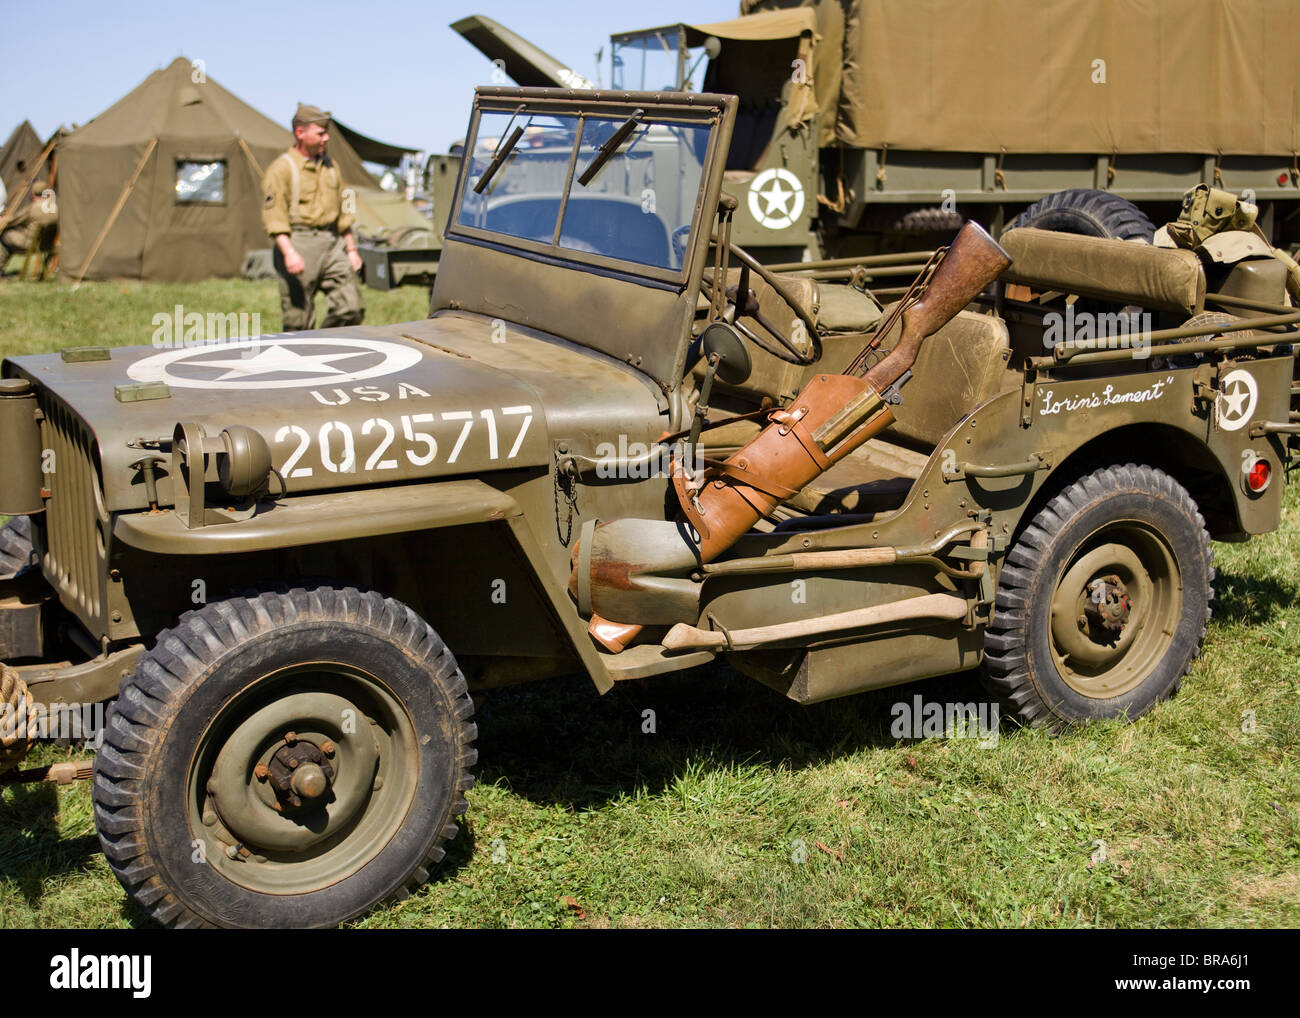 wwii era us army willys jeep stockfoto lizenzfreies bild. Black Bedroom Furniture Sets. Home Design Ideas